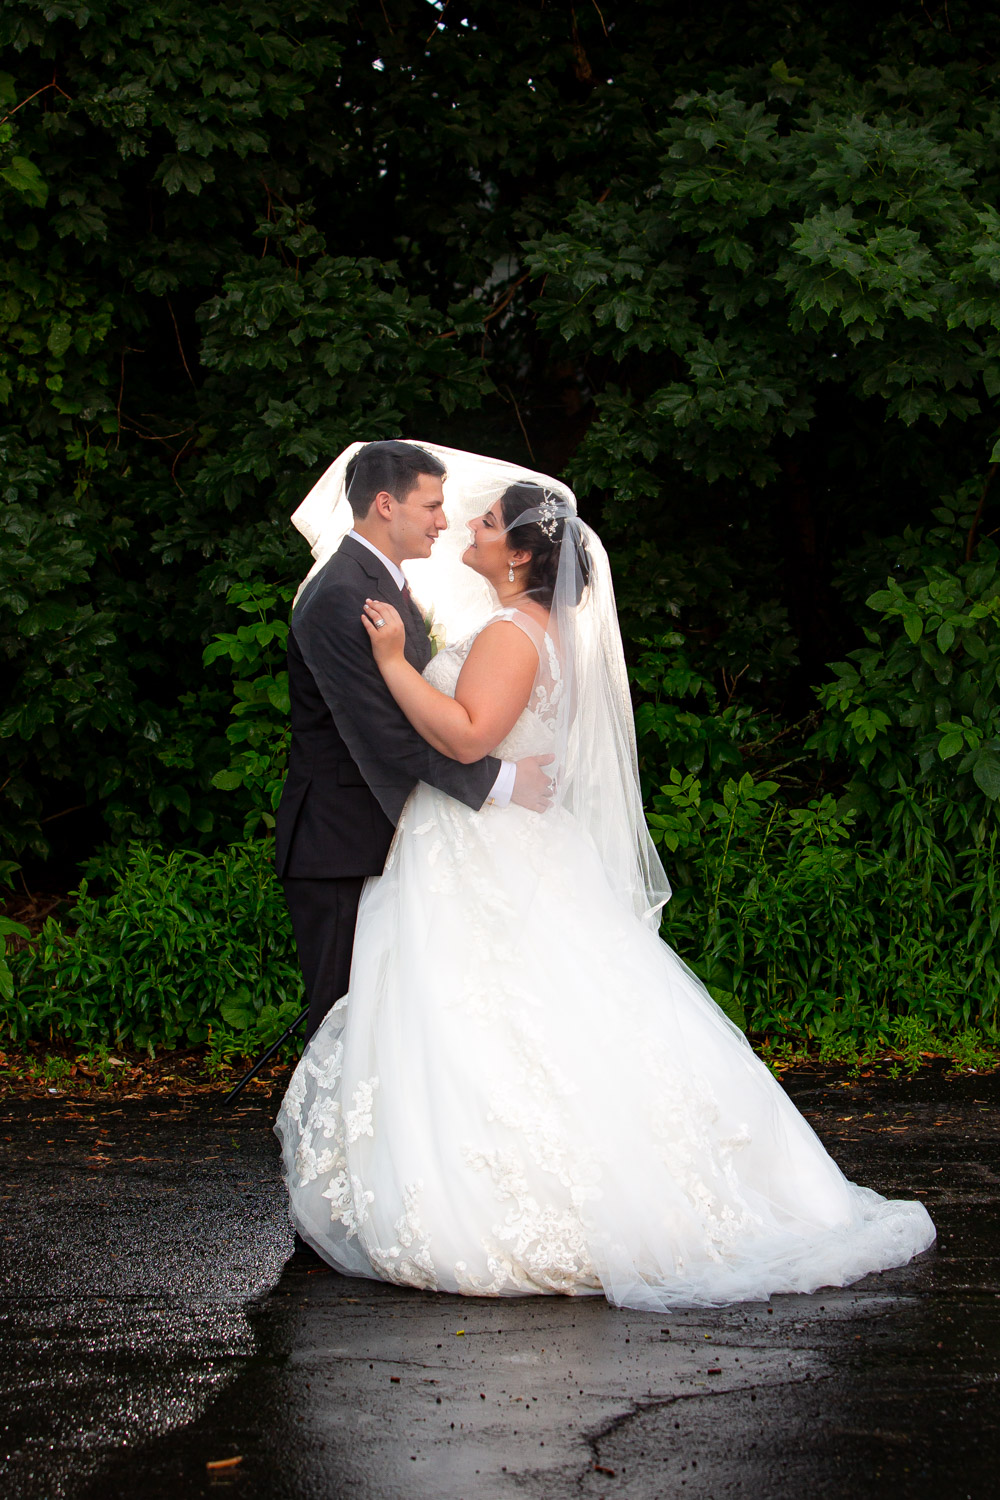 Finger-Lakes-Wedding-Photographer-Joe-Hy-Owego-NY-8323.jpg